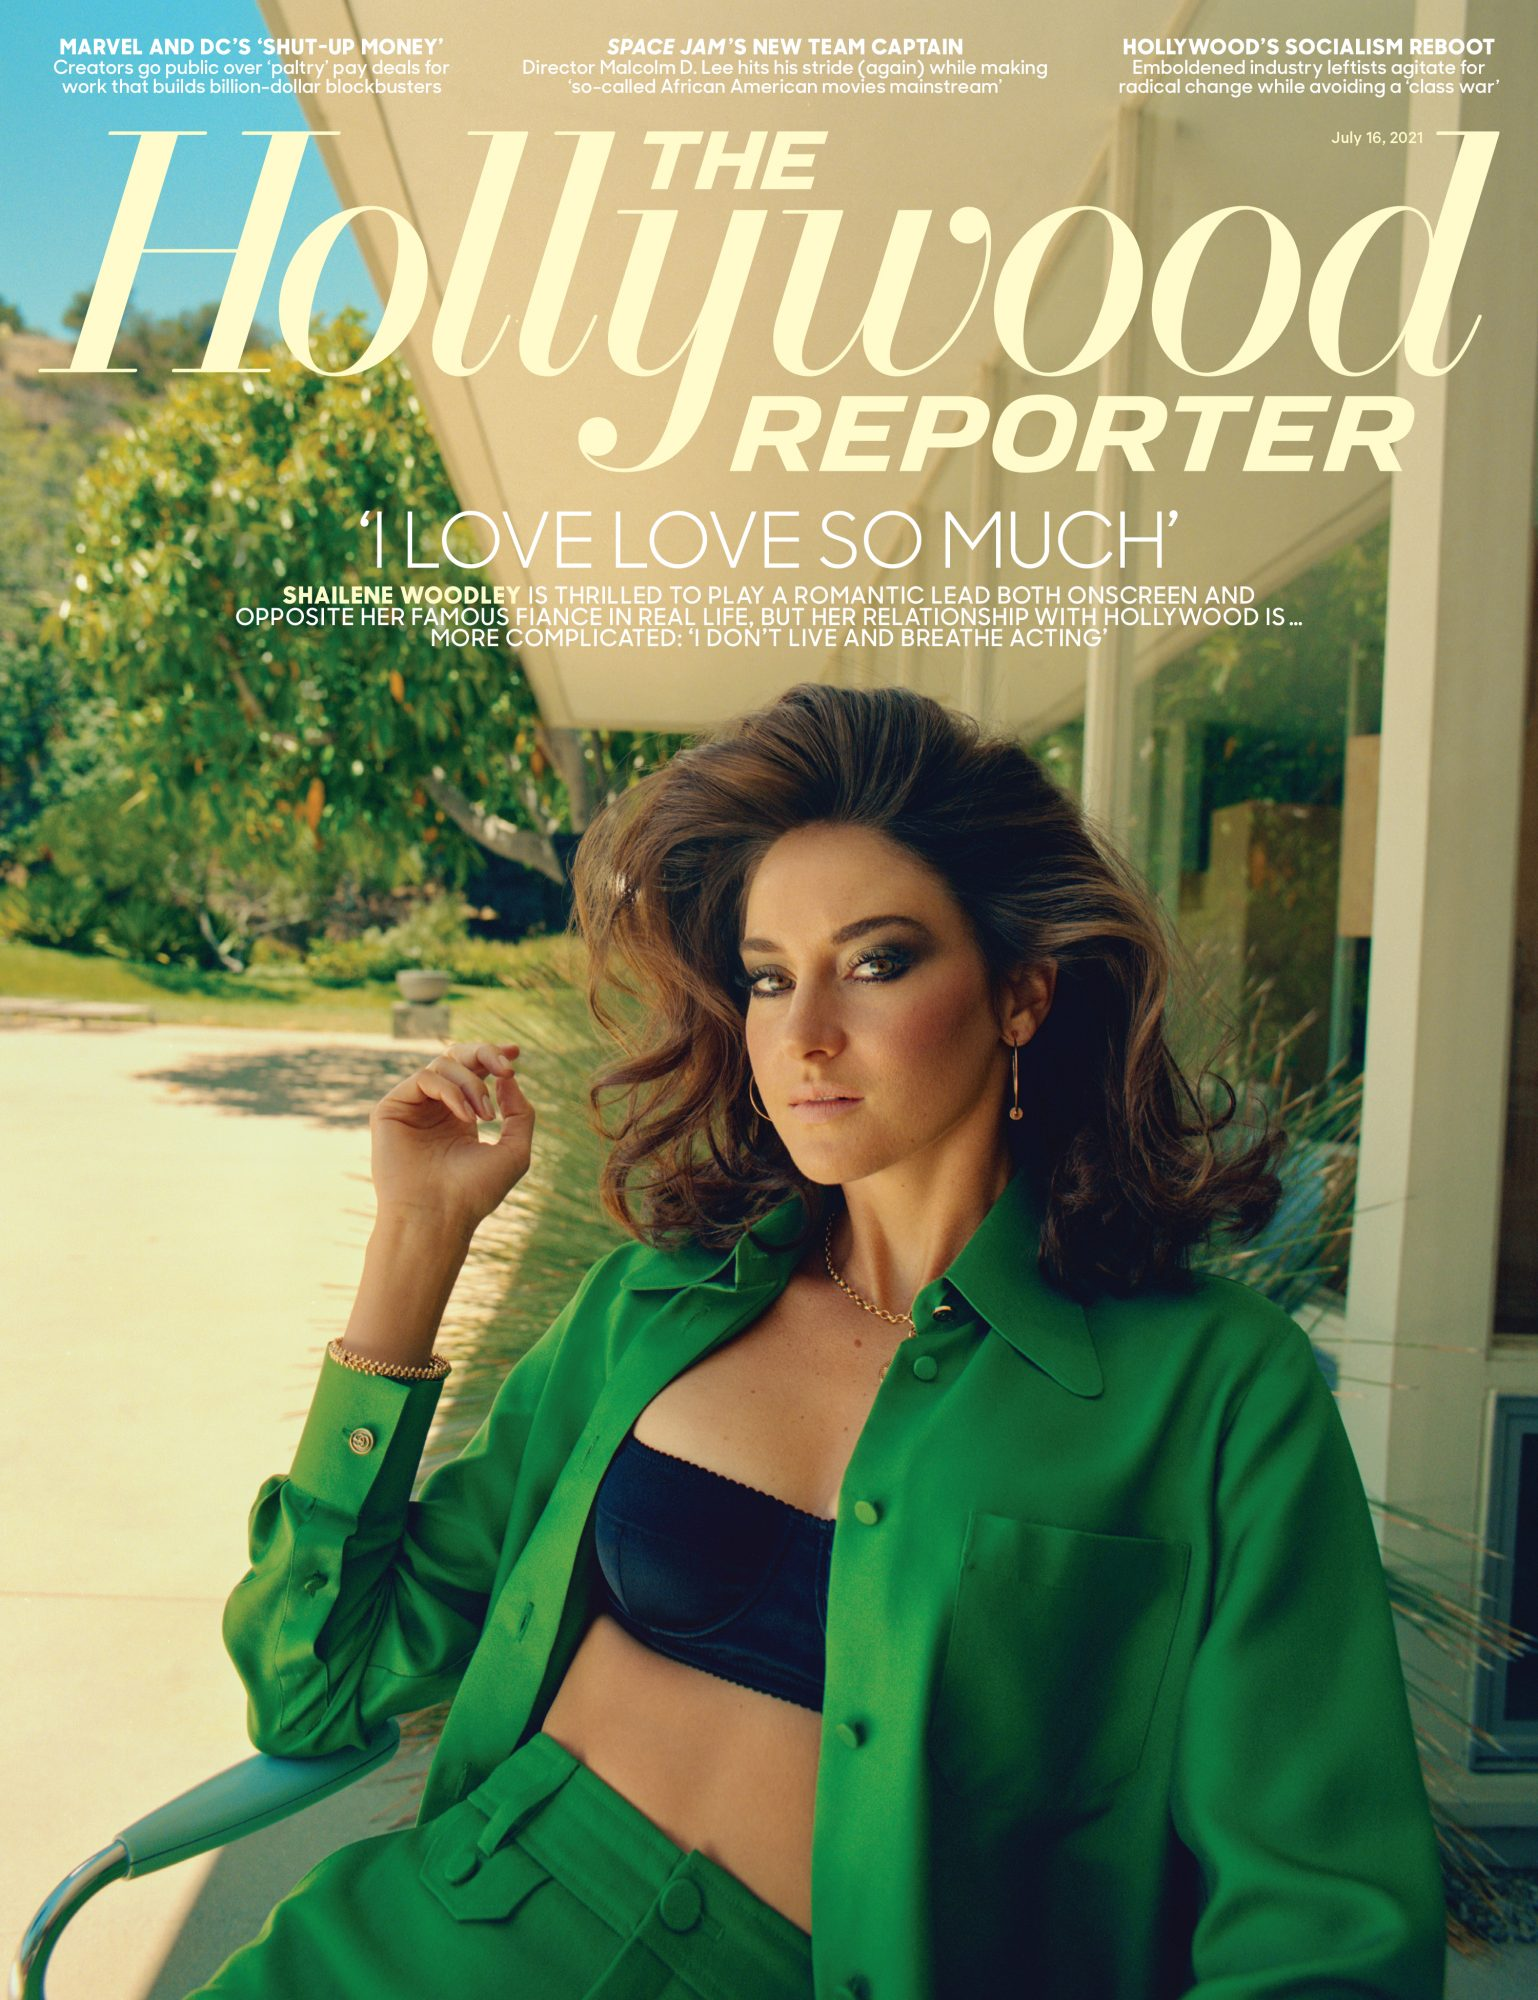 Shailene Woodley for the Hollywood Reporter